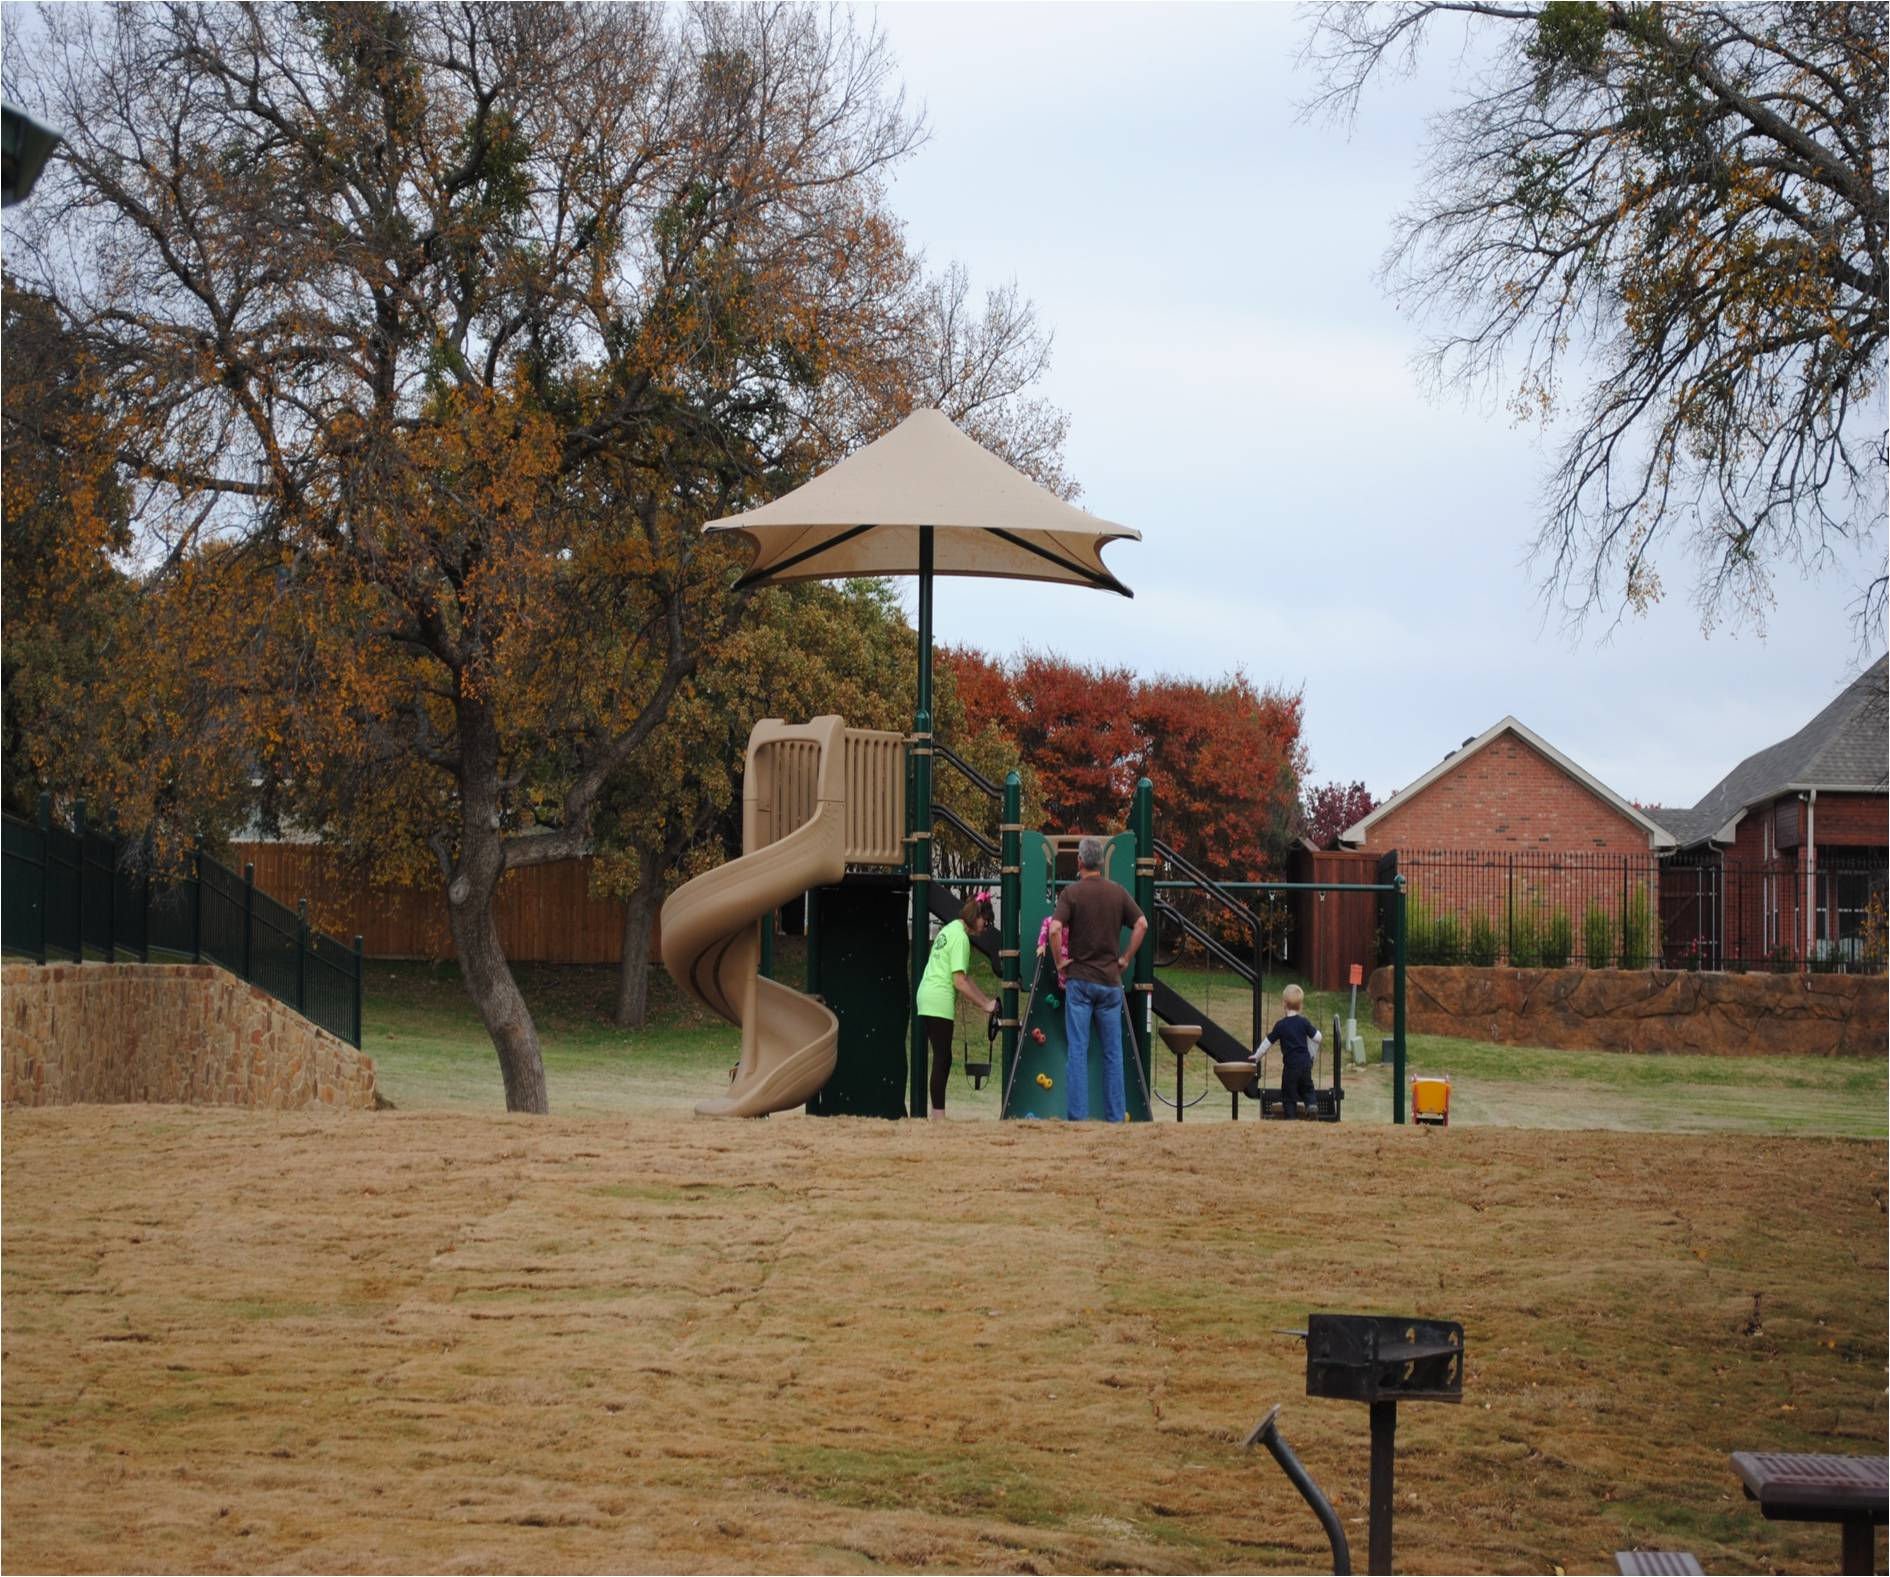 Lions Club Playstructure